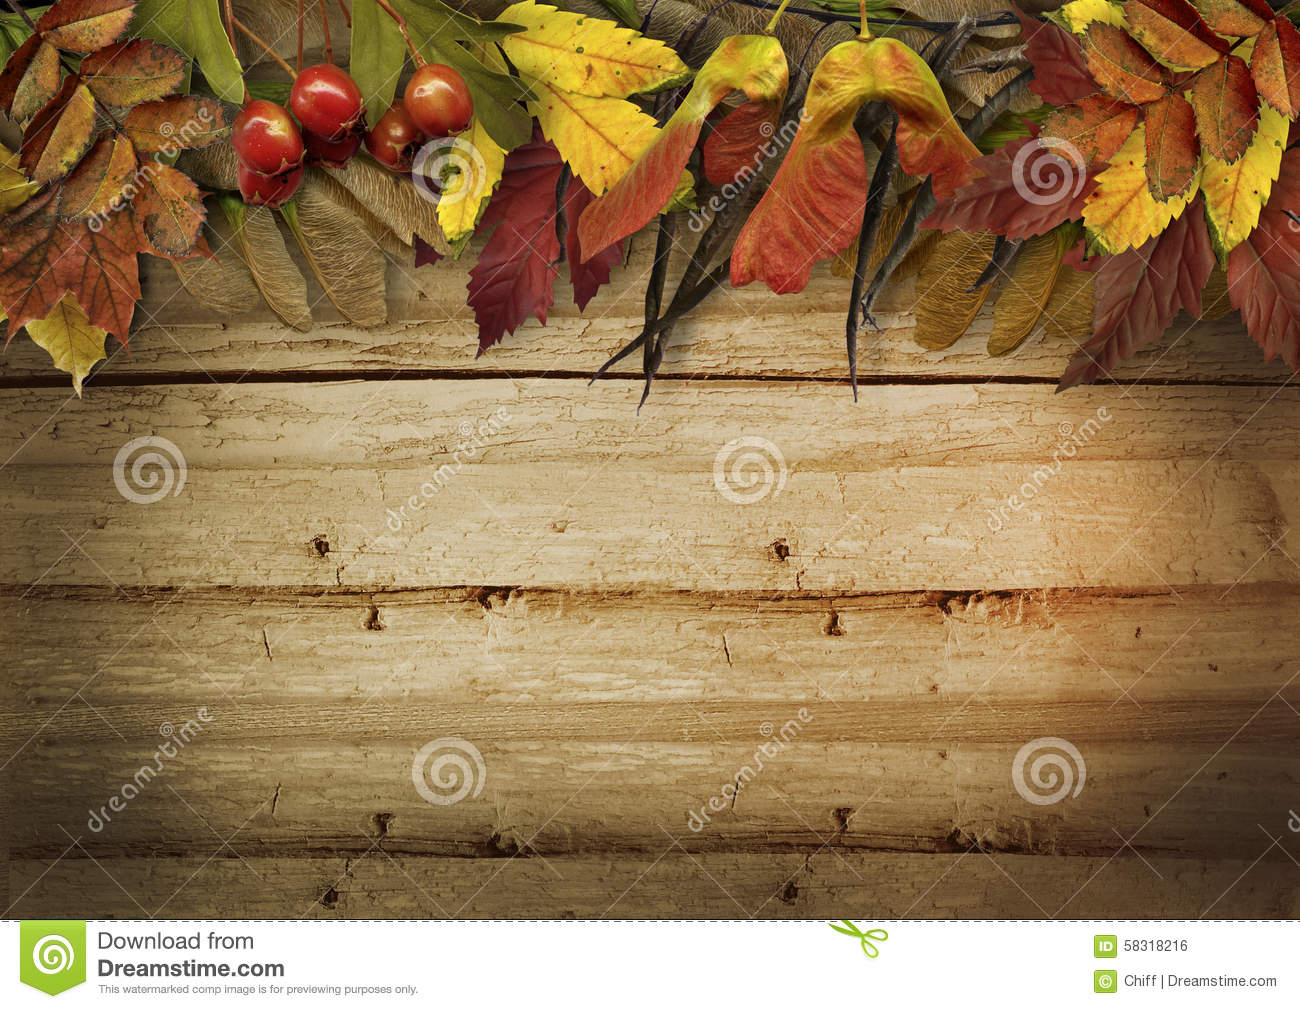 Fall And Thanksgiving Wallpaper Autumn Leaves Border On Vintage Wooden Background Stock